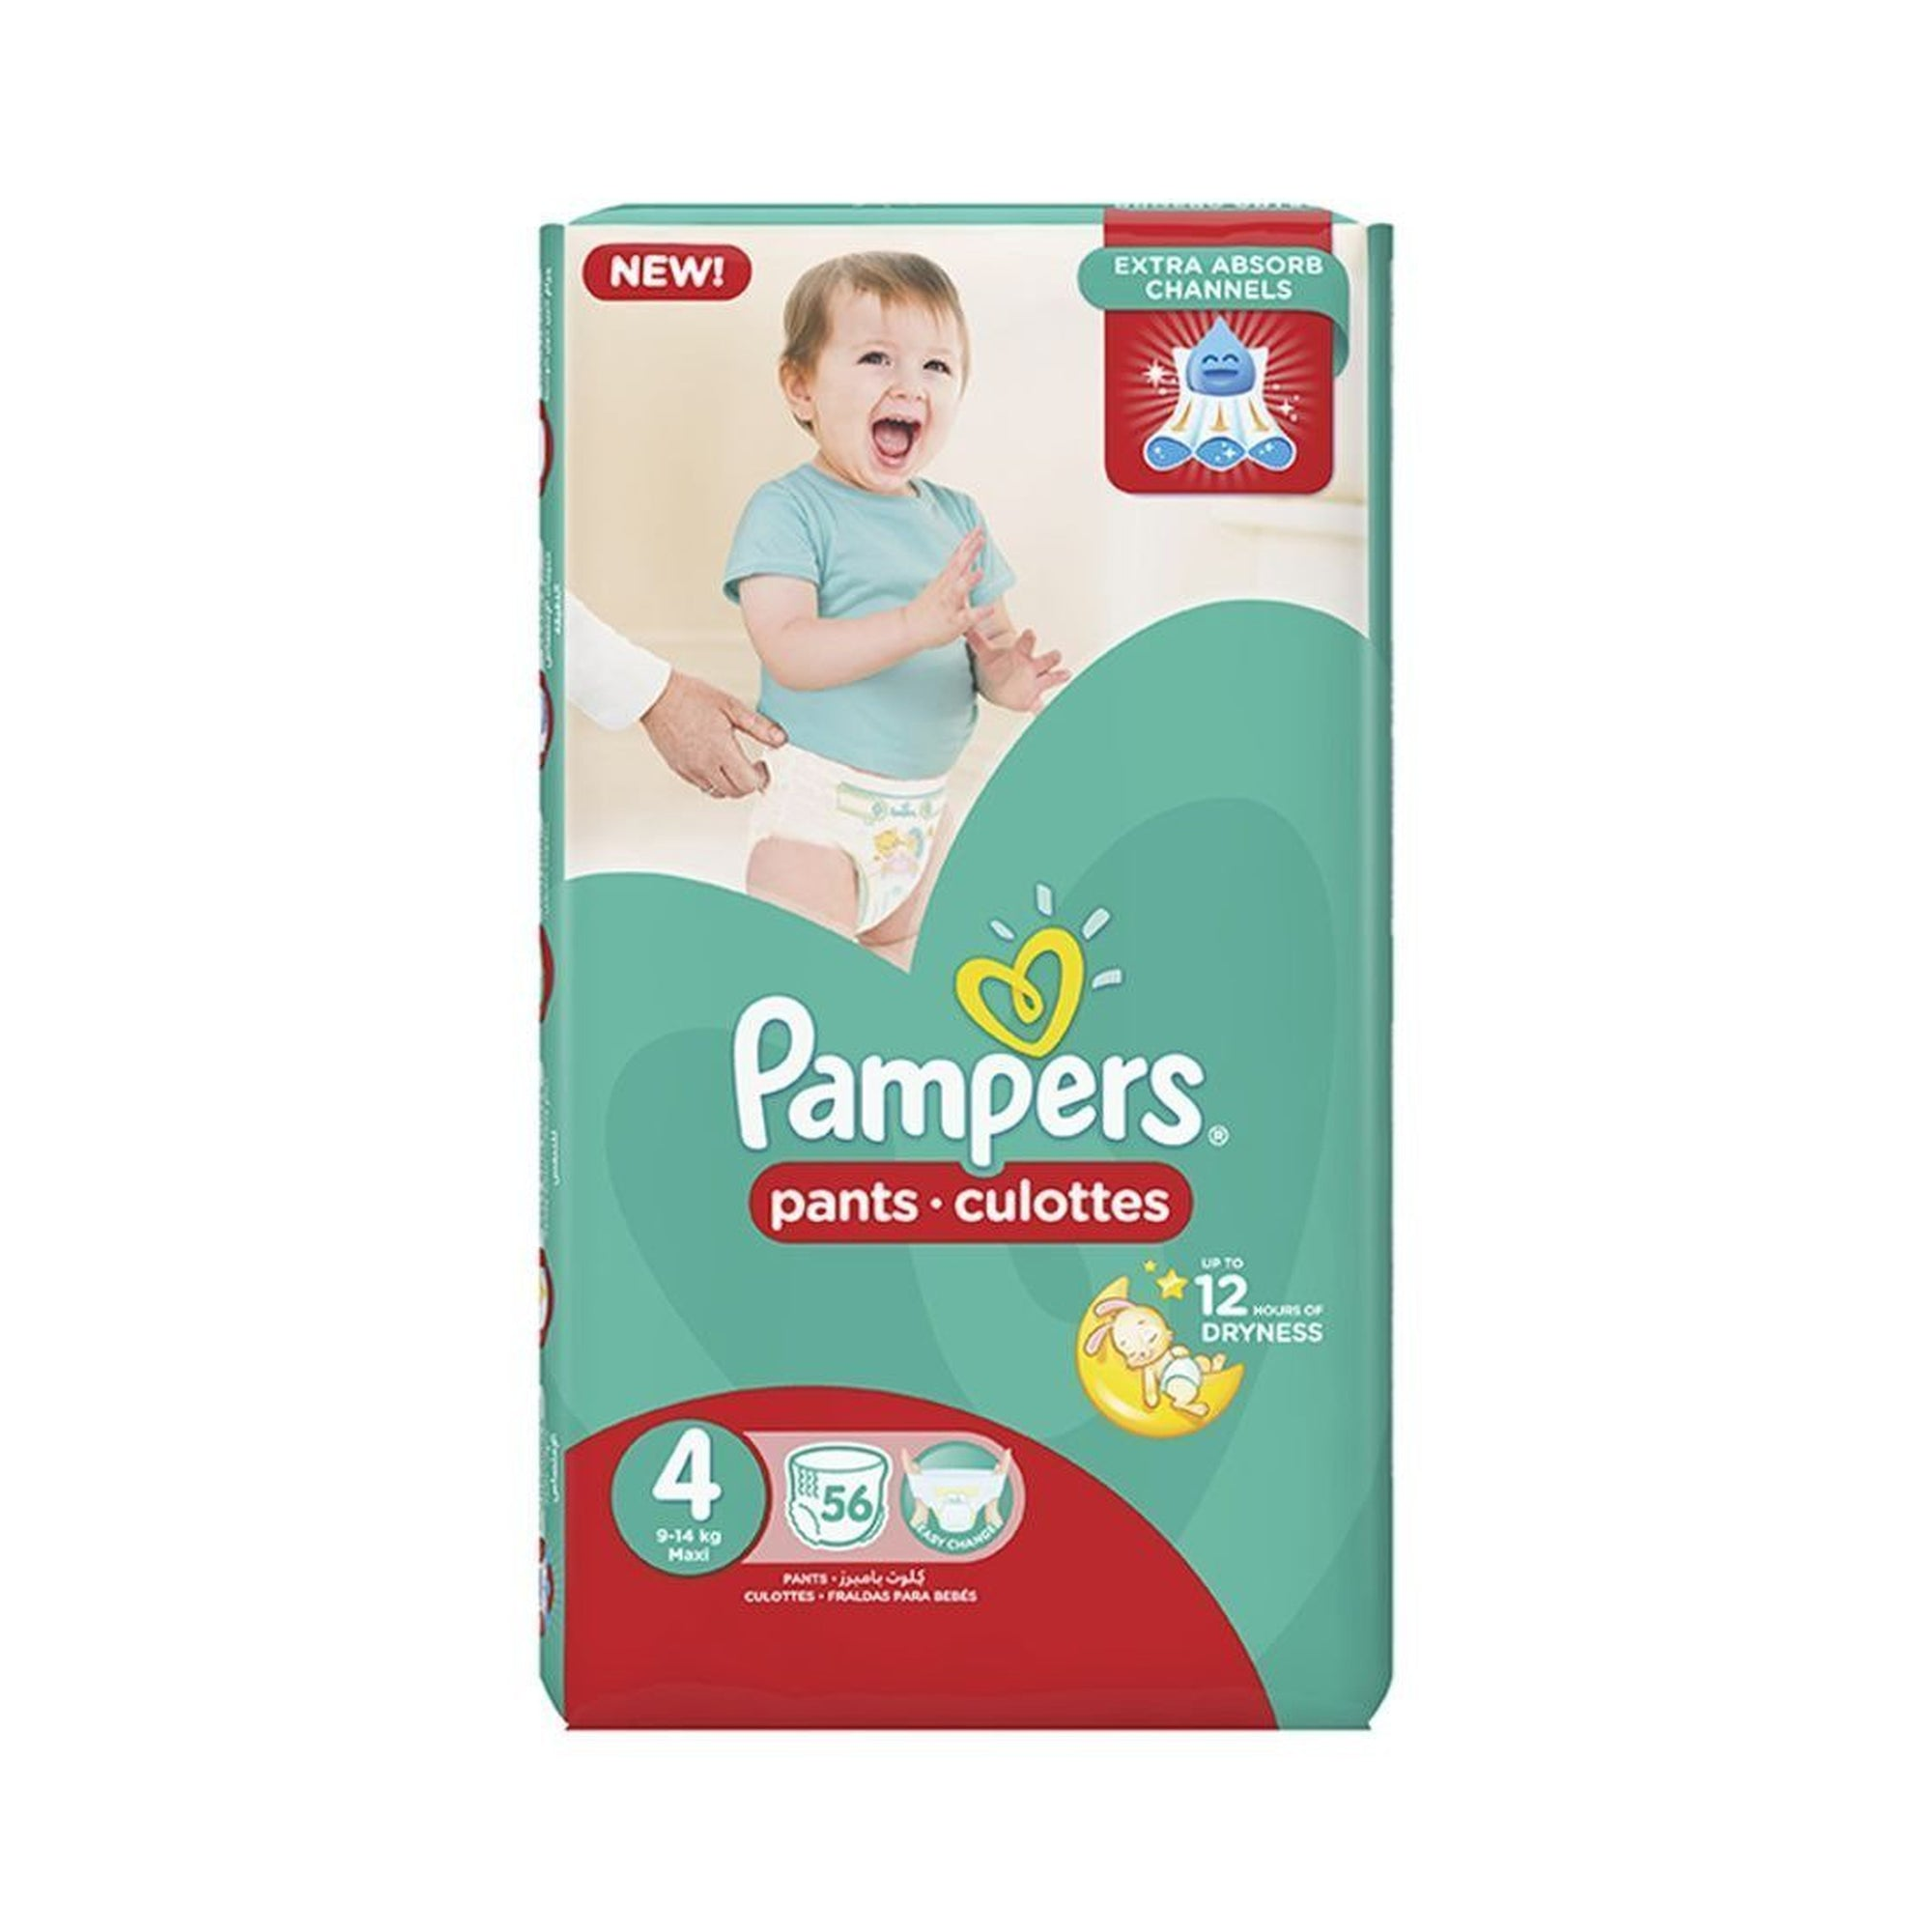 Pamper Pants Size 4 ( 9-14kgs) (56pc)-Diapers-Mother and Baby Shop Kenya's #1 Online Baby Shop